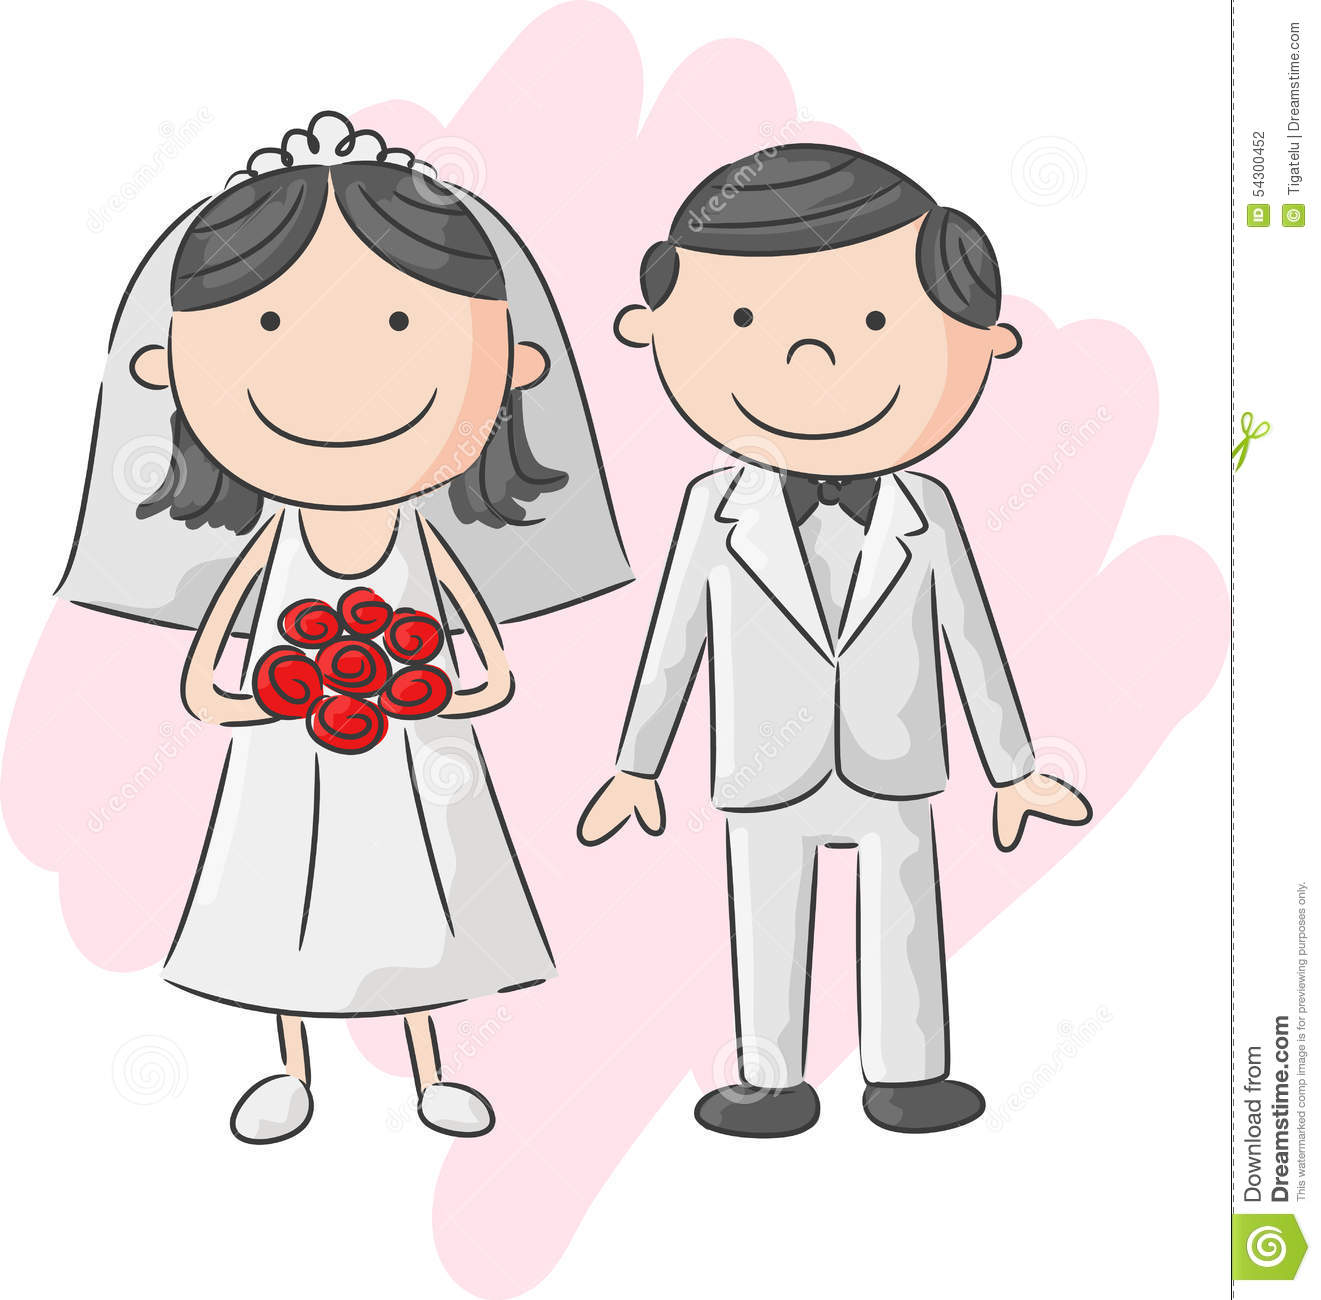 Cartoon bride and groom stock vector. Illustration of love ...